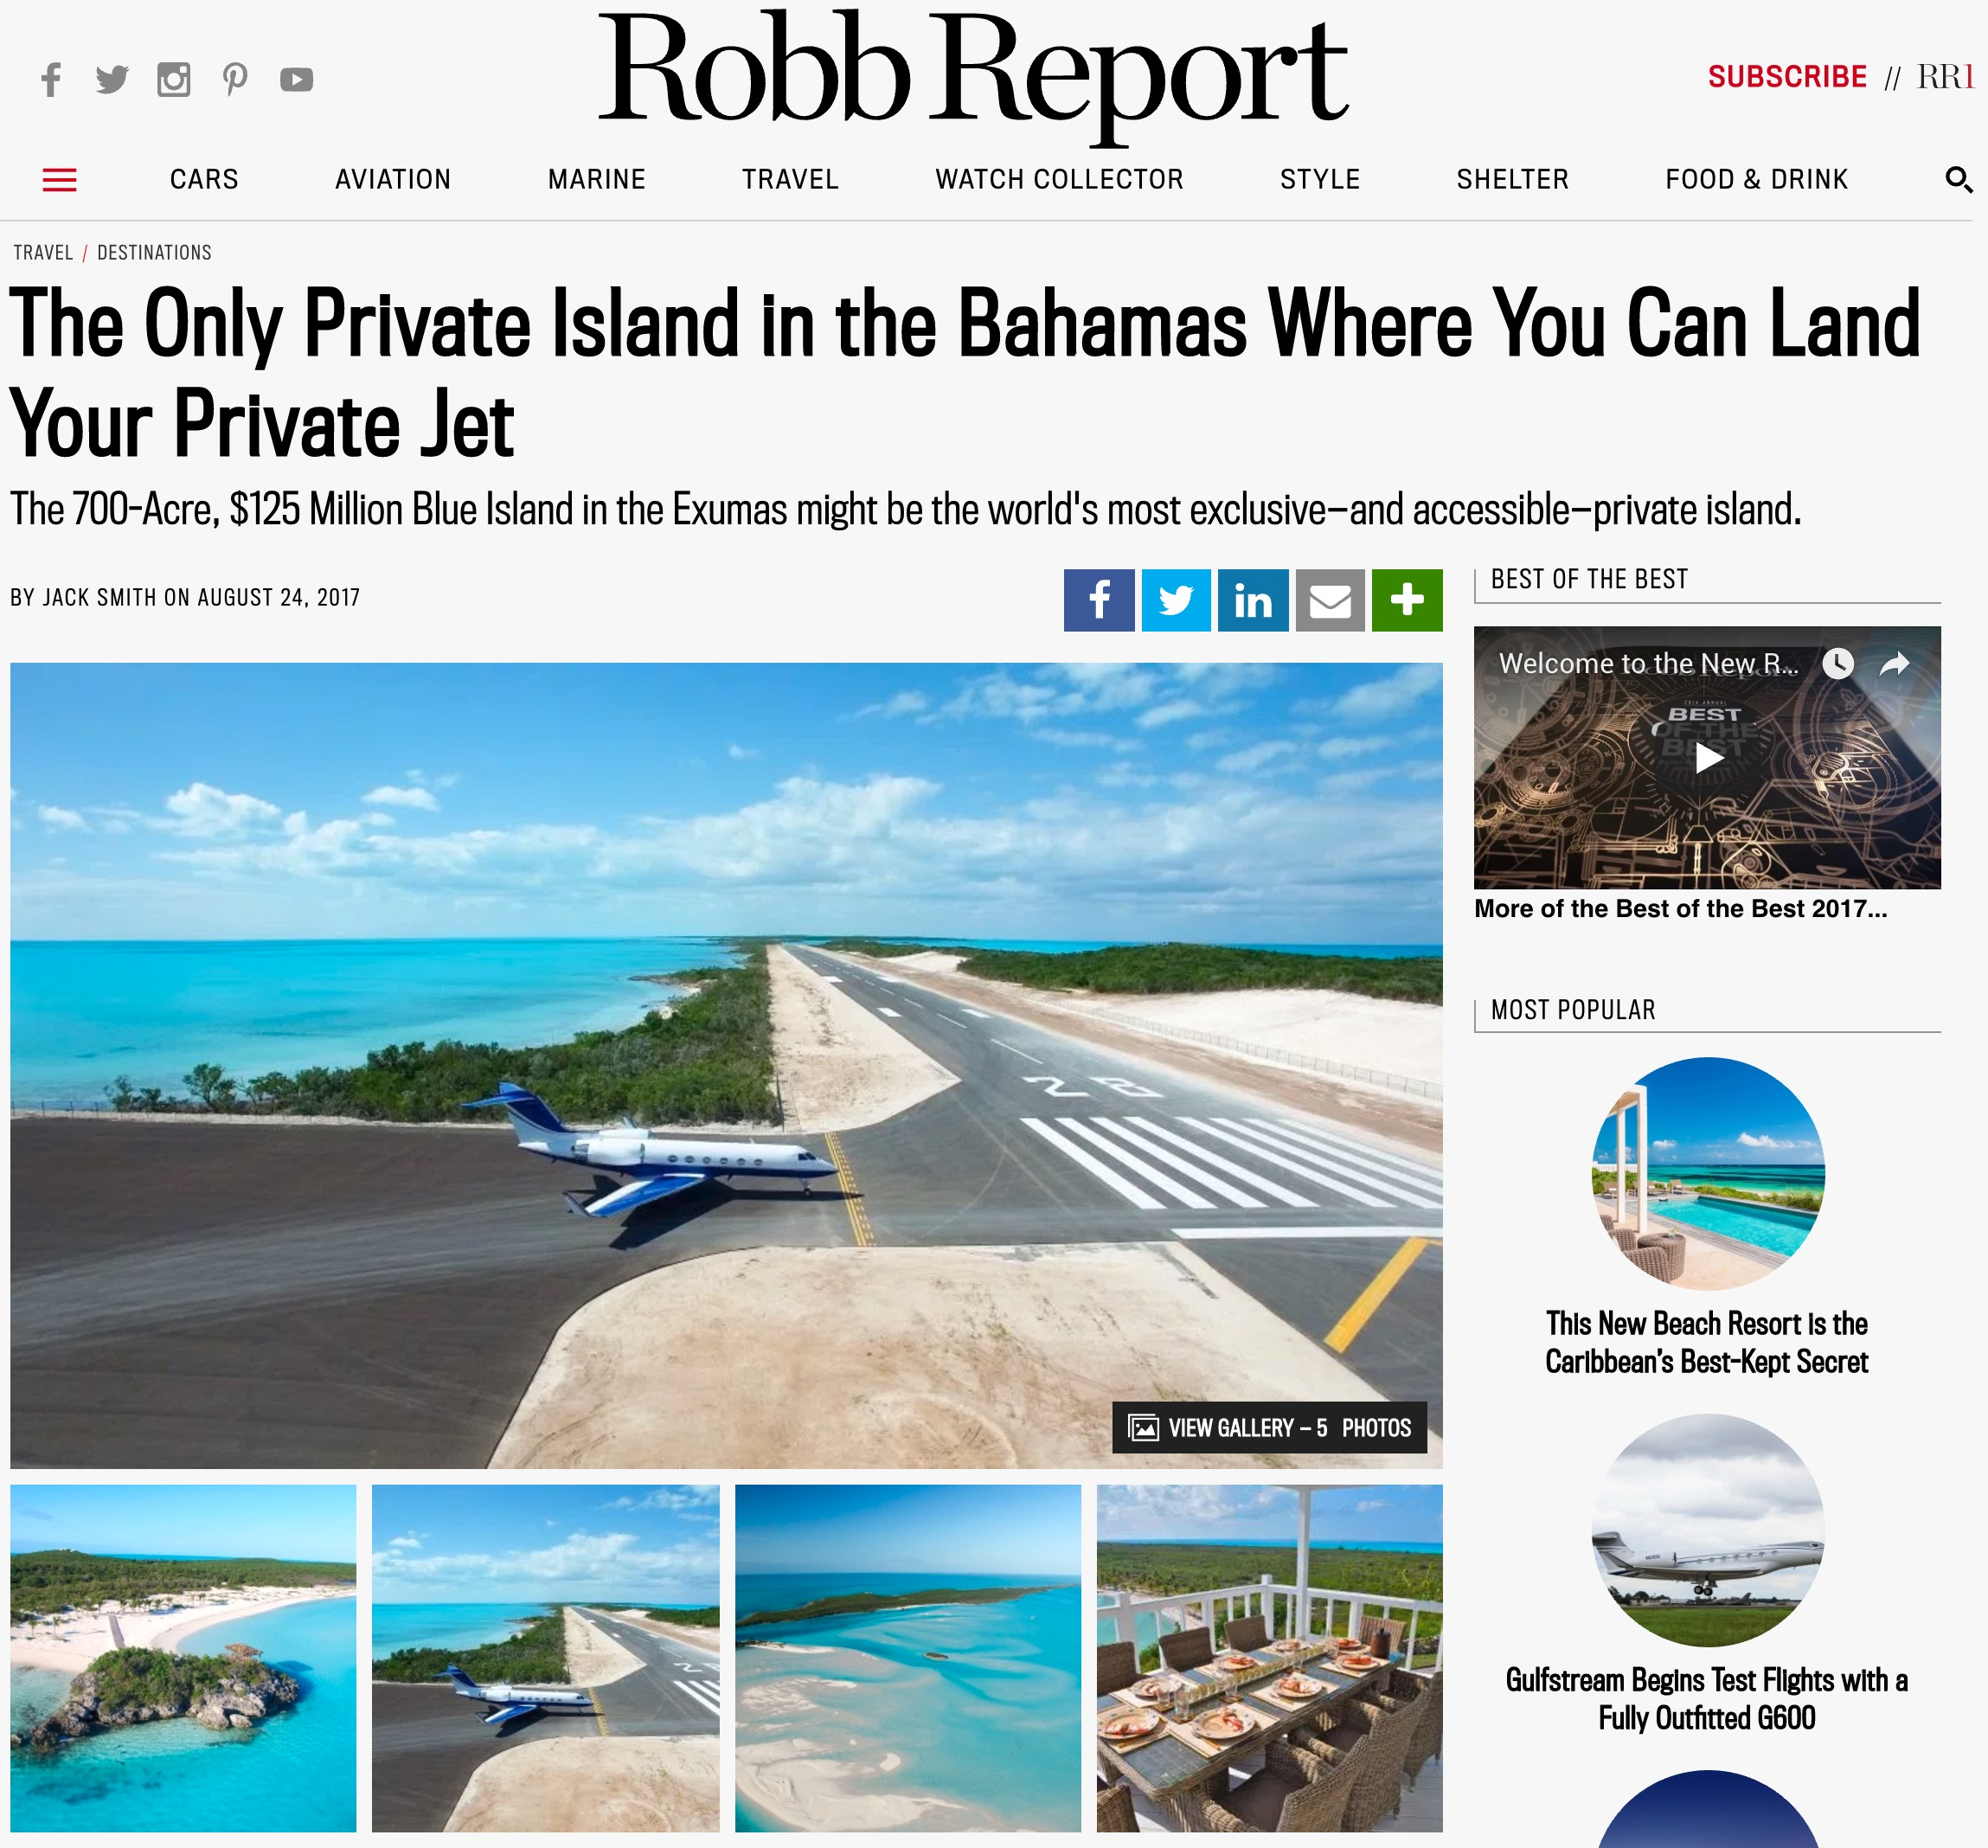 Read About Robb's Visit to Blue Island - Robb Report on Blue Island Exuma